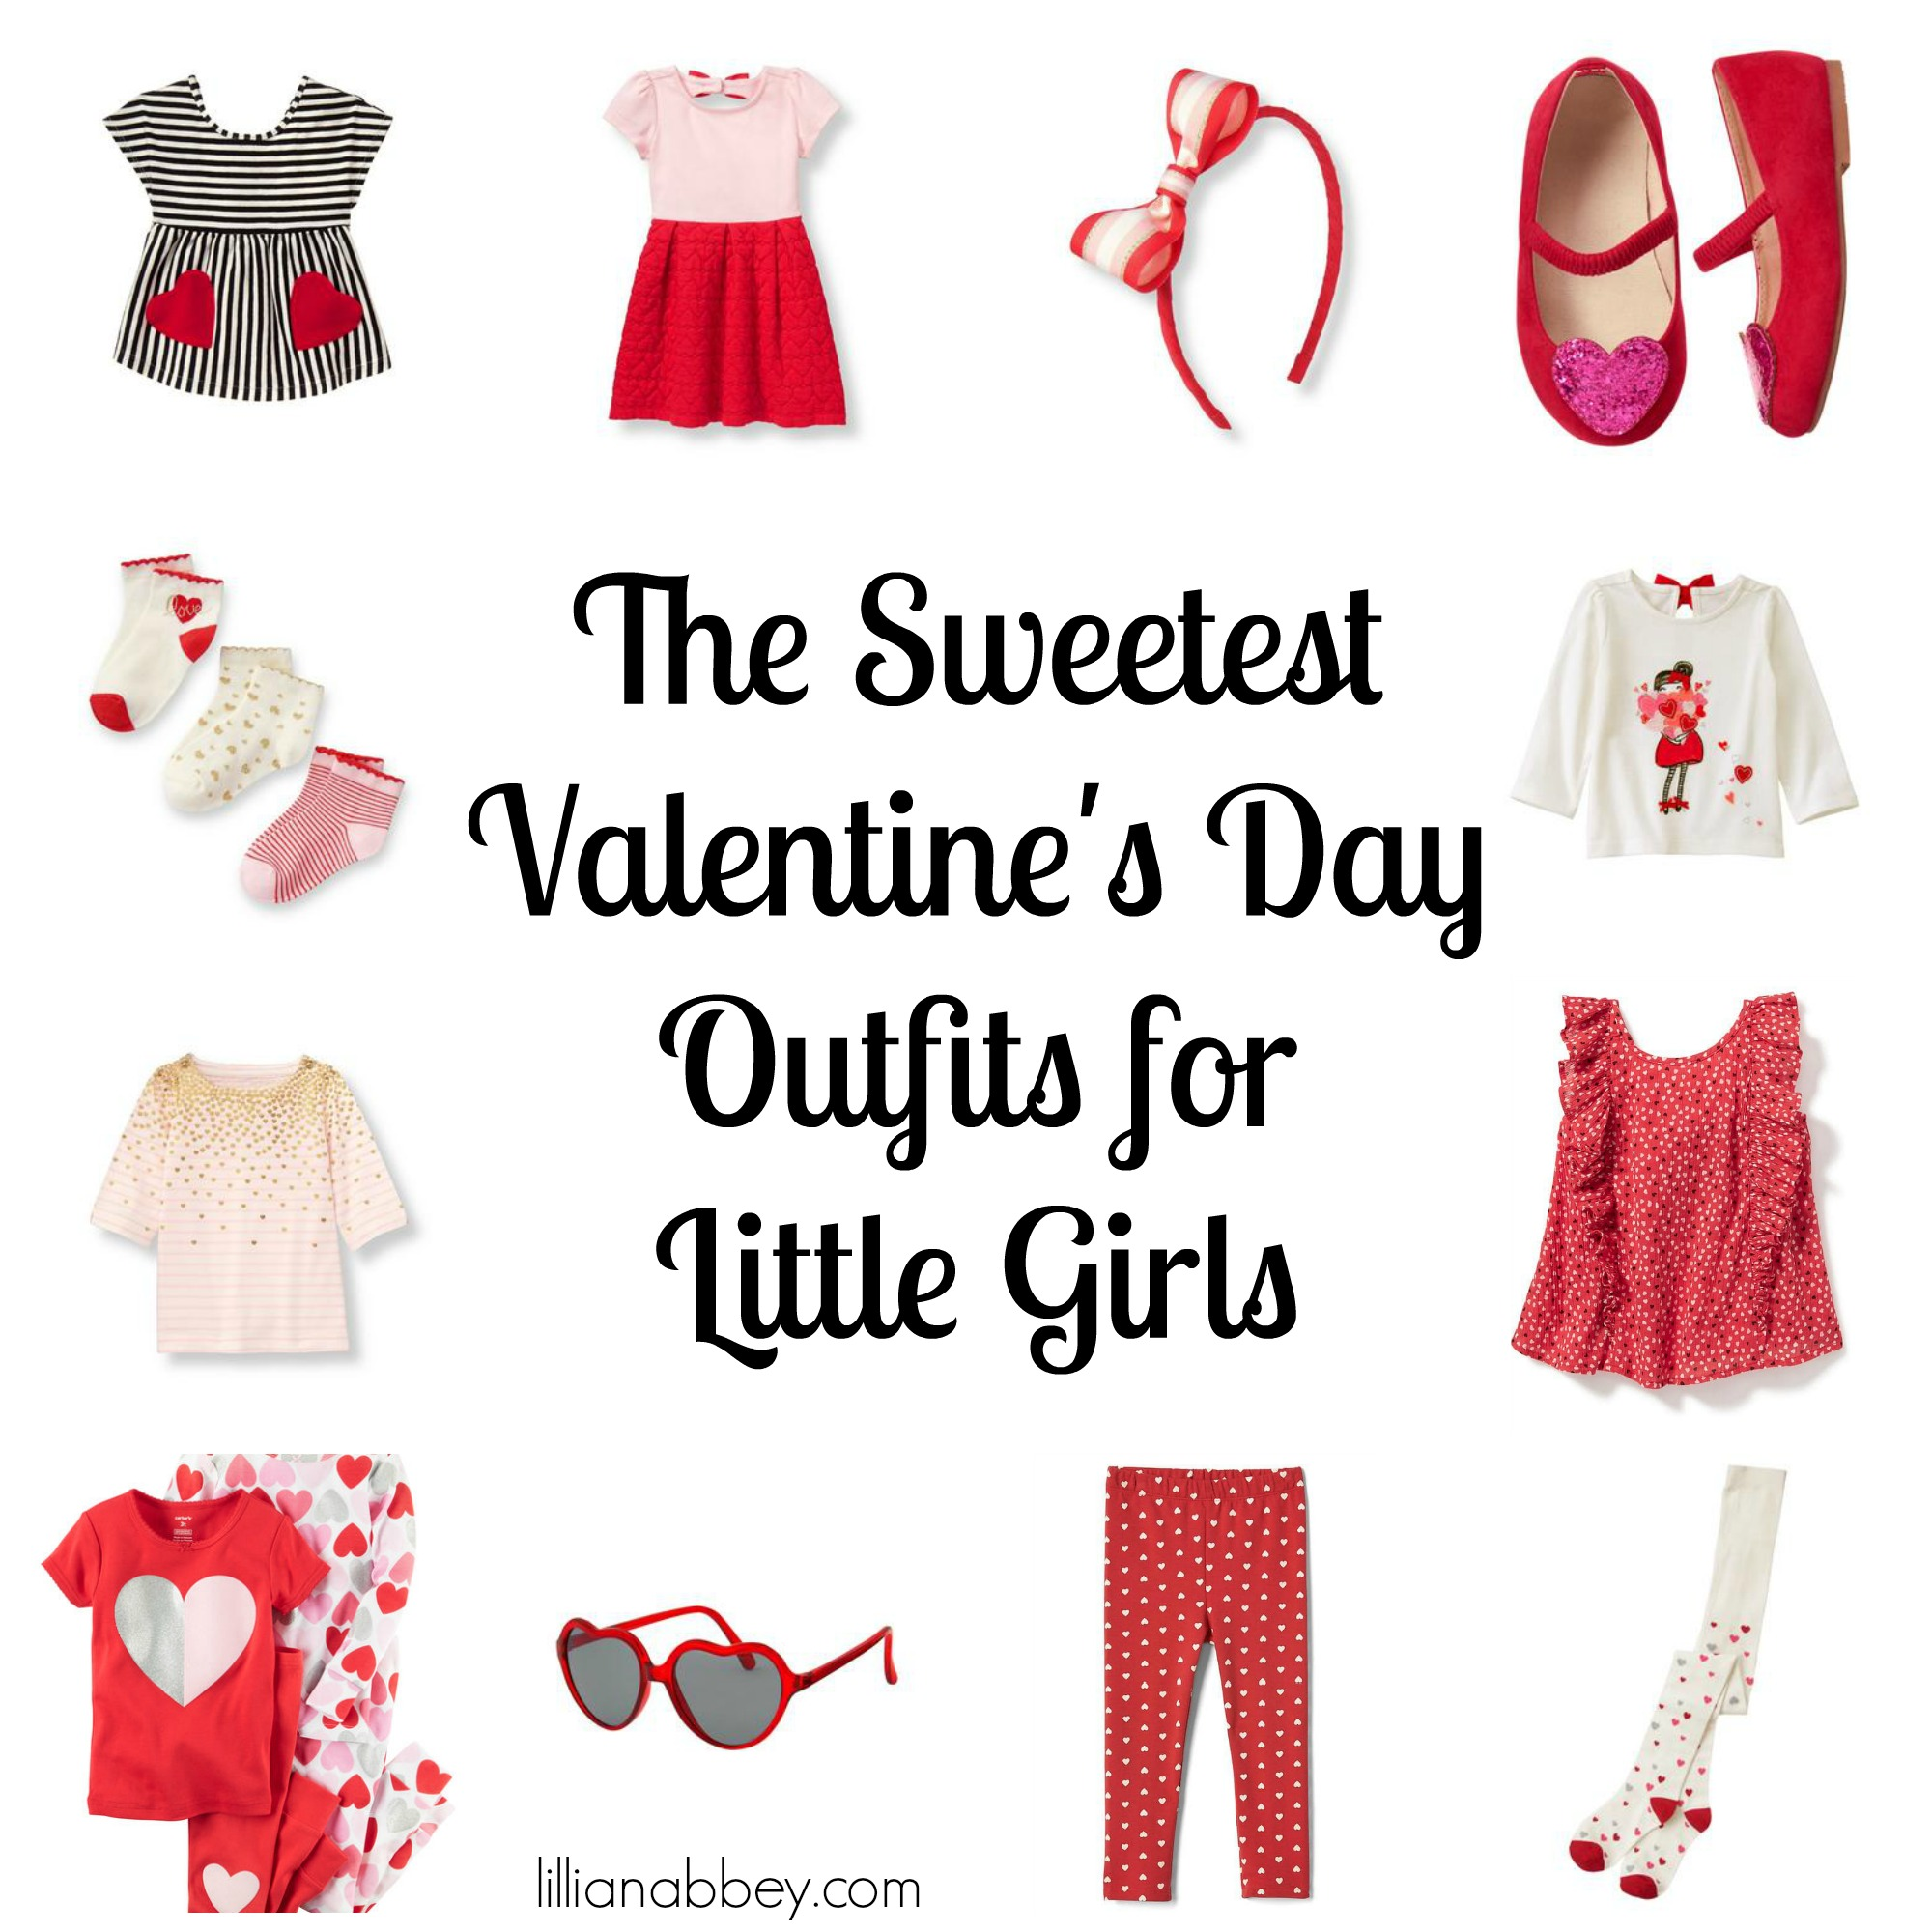 The Sweetest Valentine's Day Outfits for Little Girls